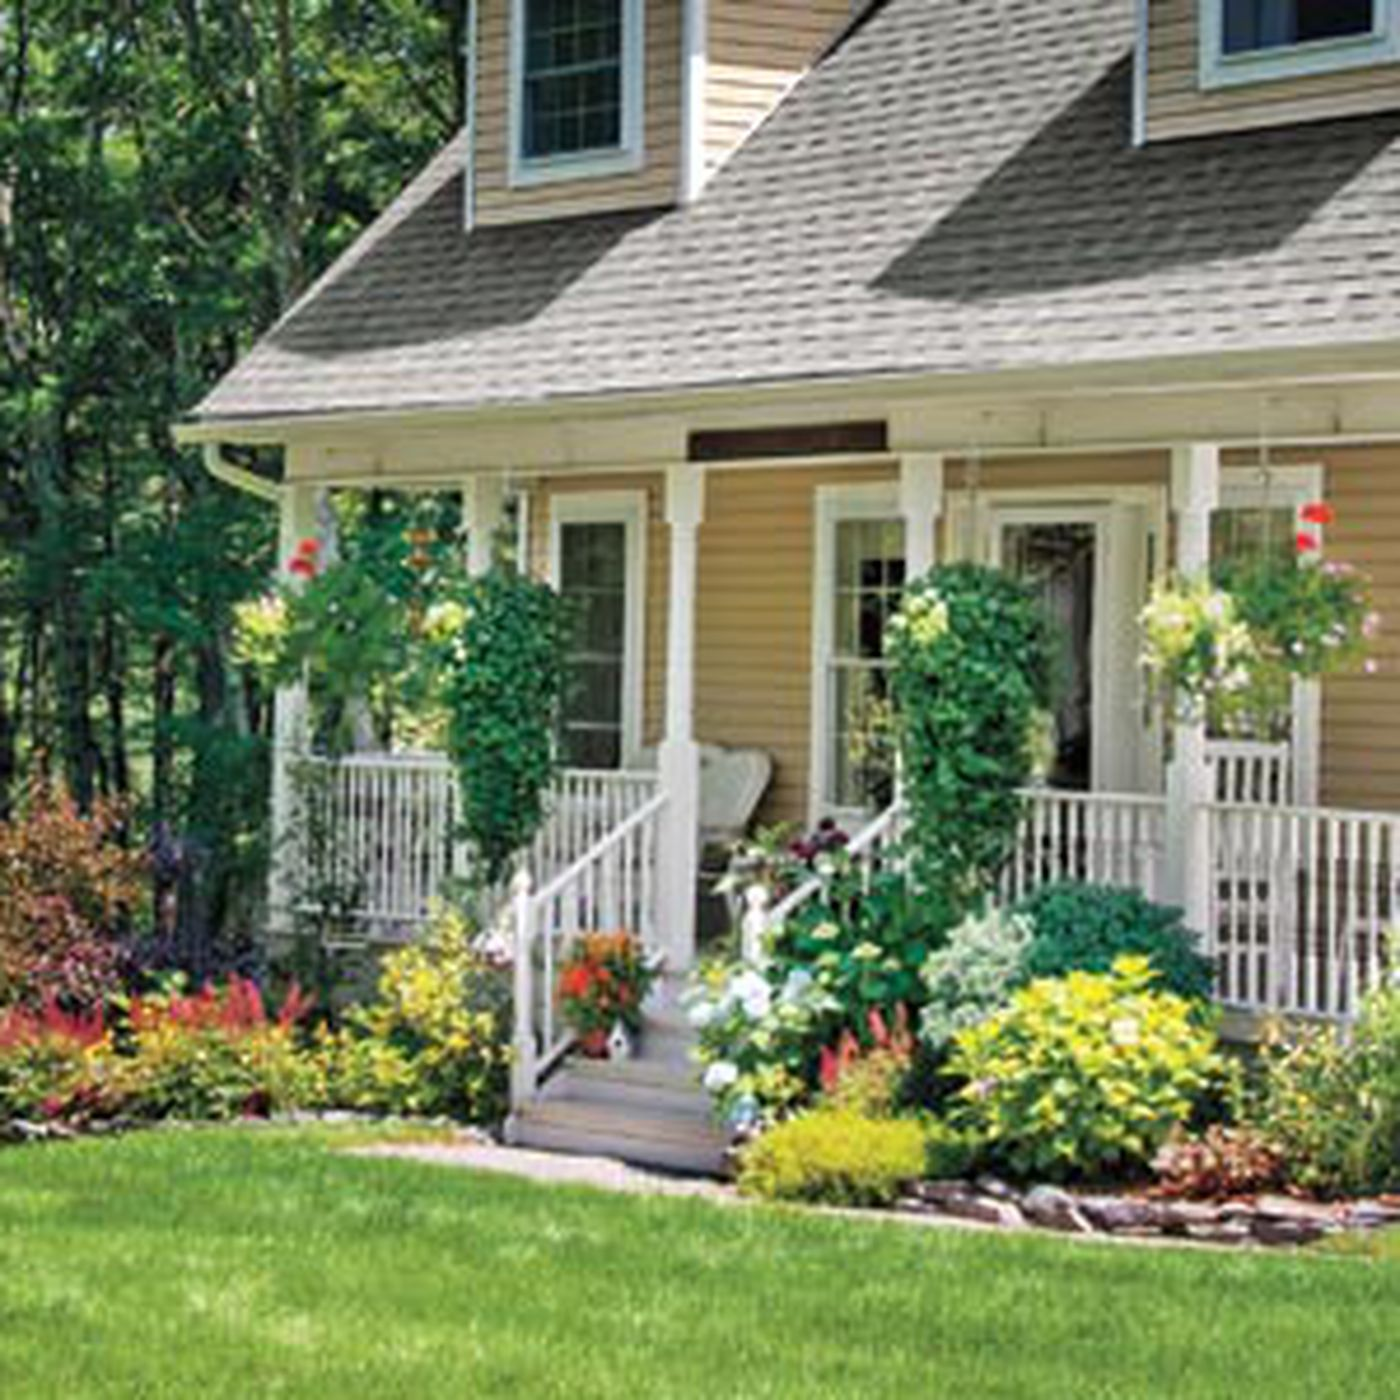 Best Foundation Plants For Stellar Curb Appeal This Old House